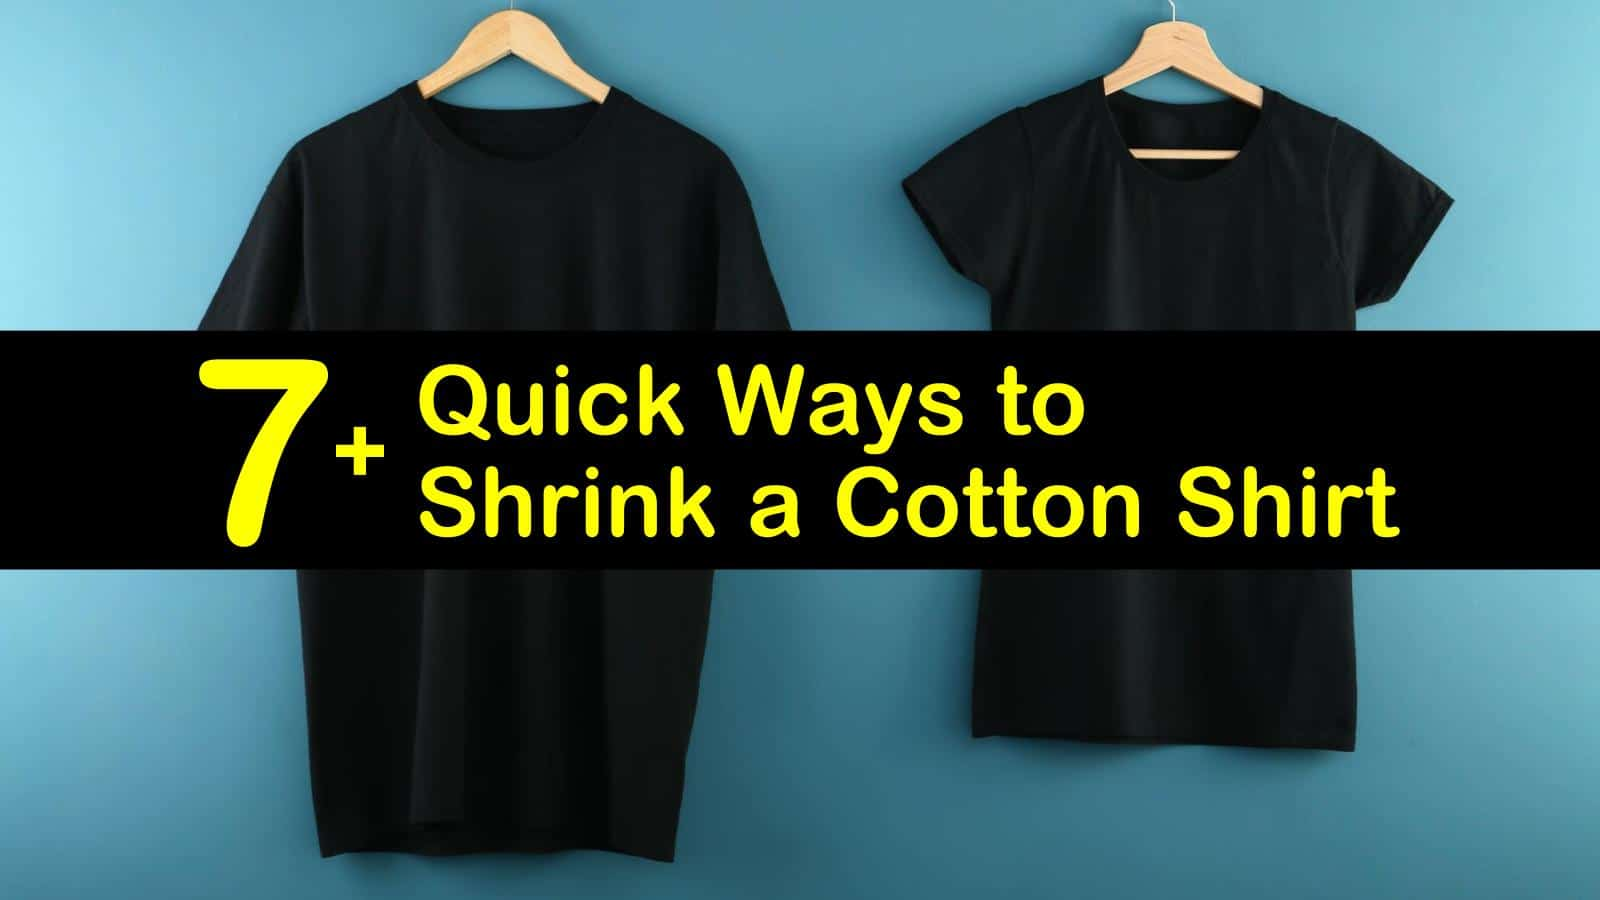 12+ Quick Ways to Shrink a Cotton Shirt